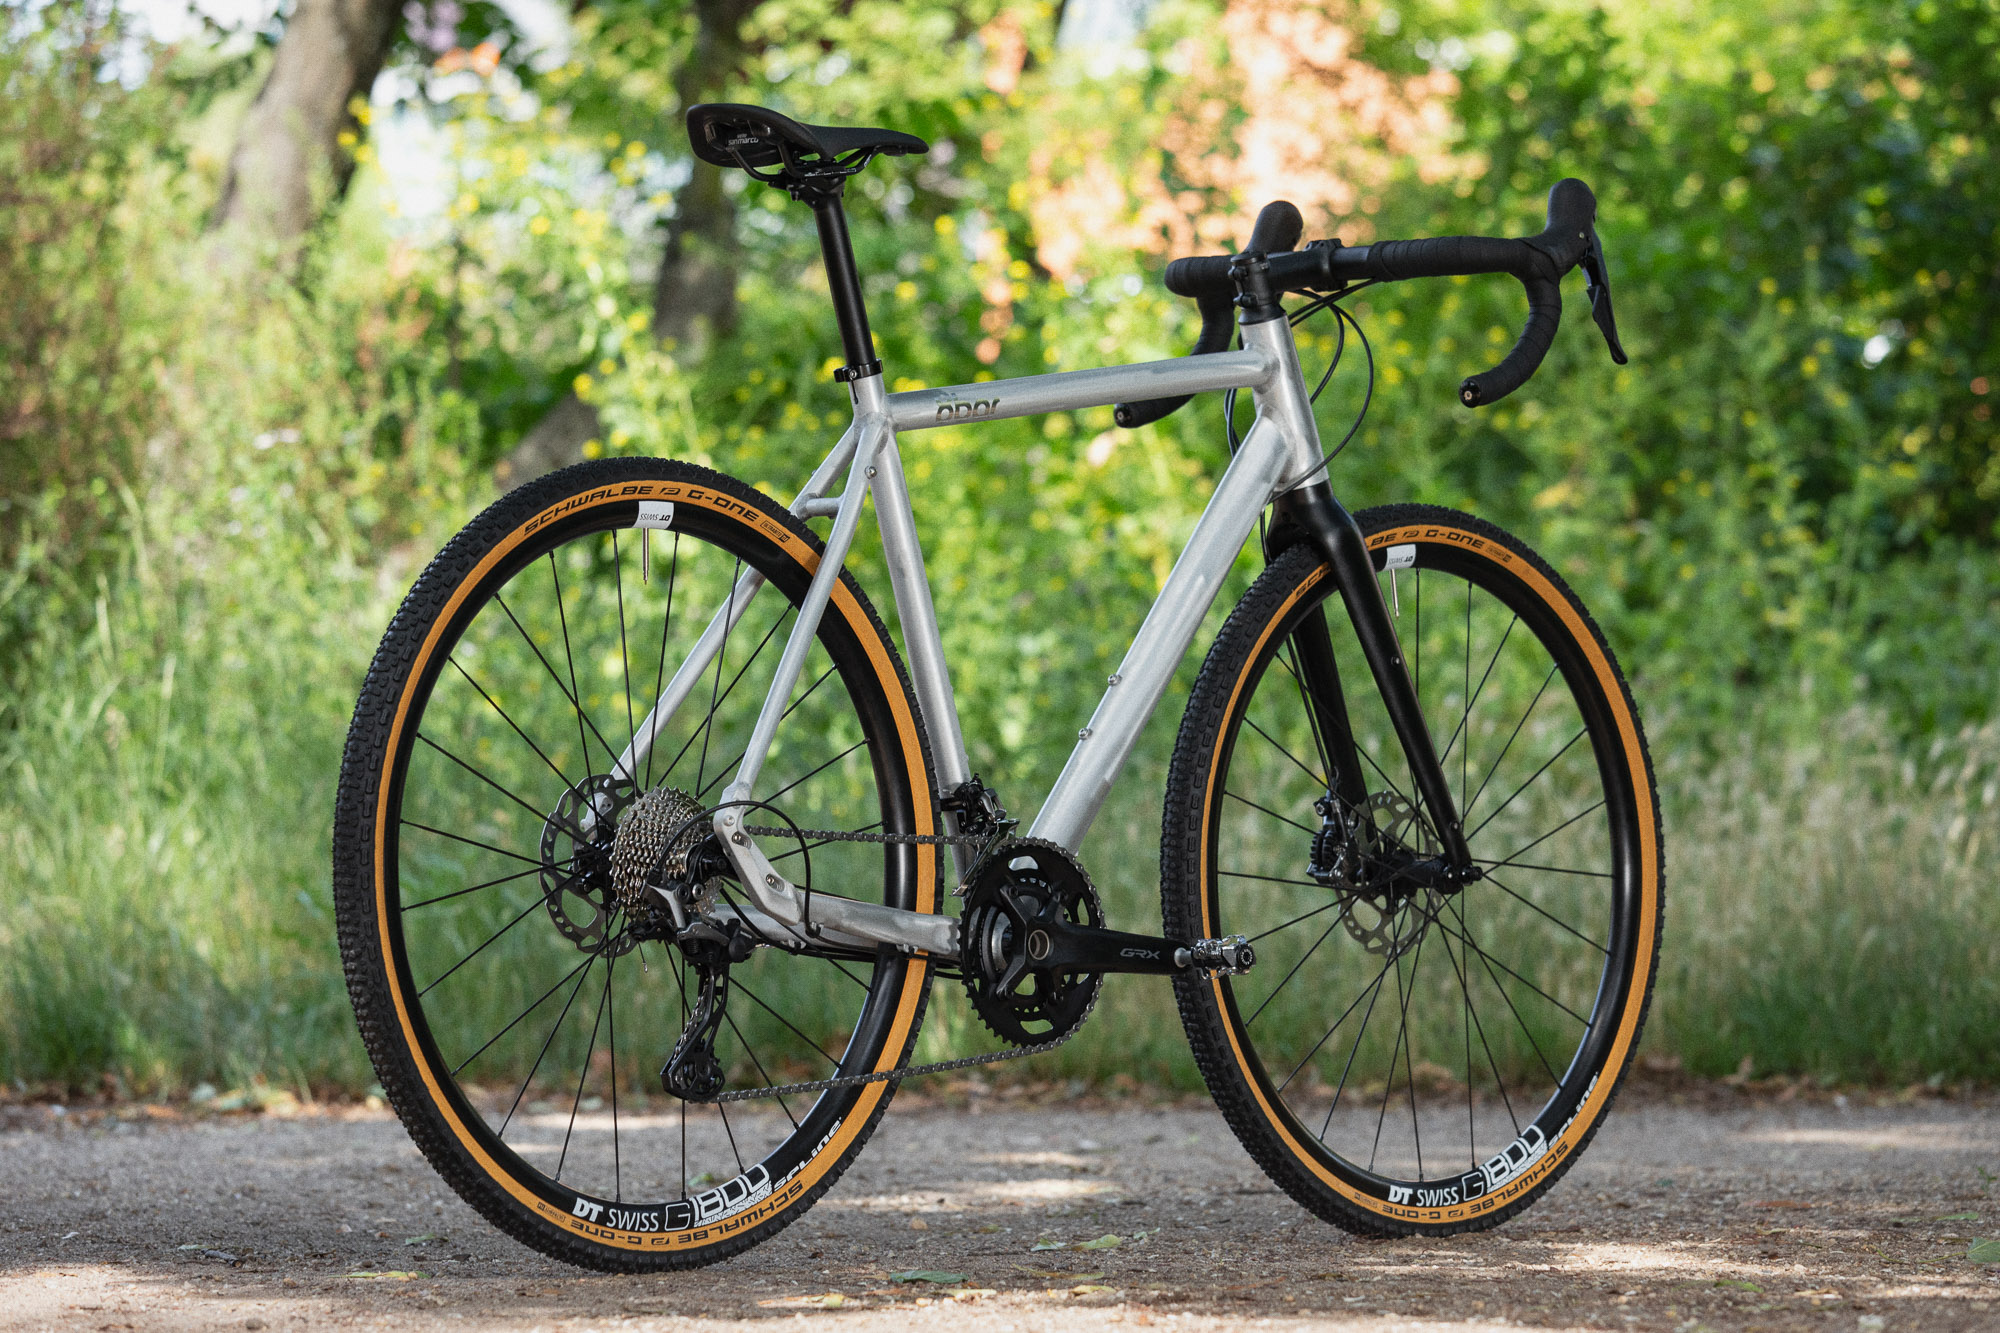 8bar complete bike mitte raw gravel lr-3